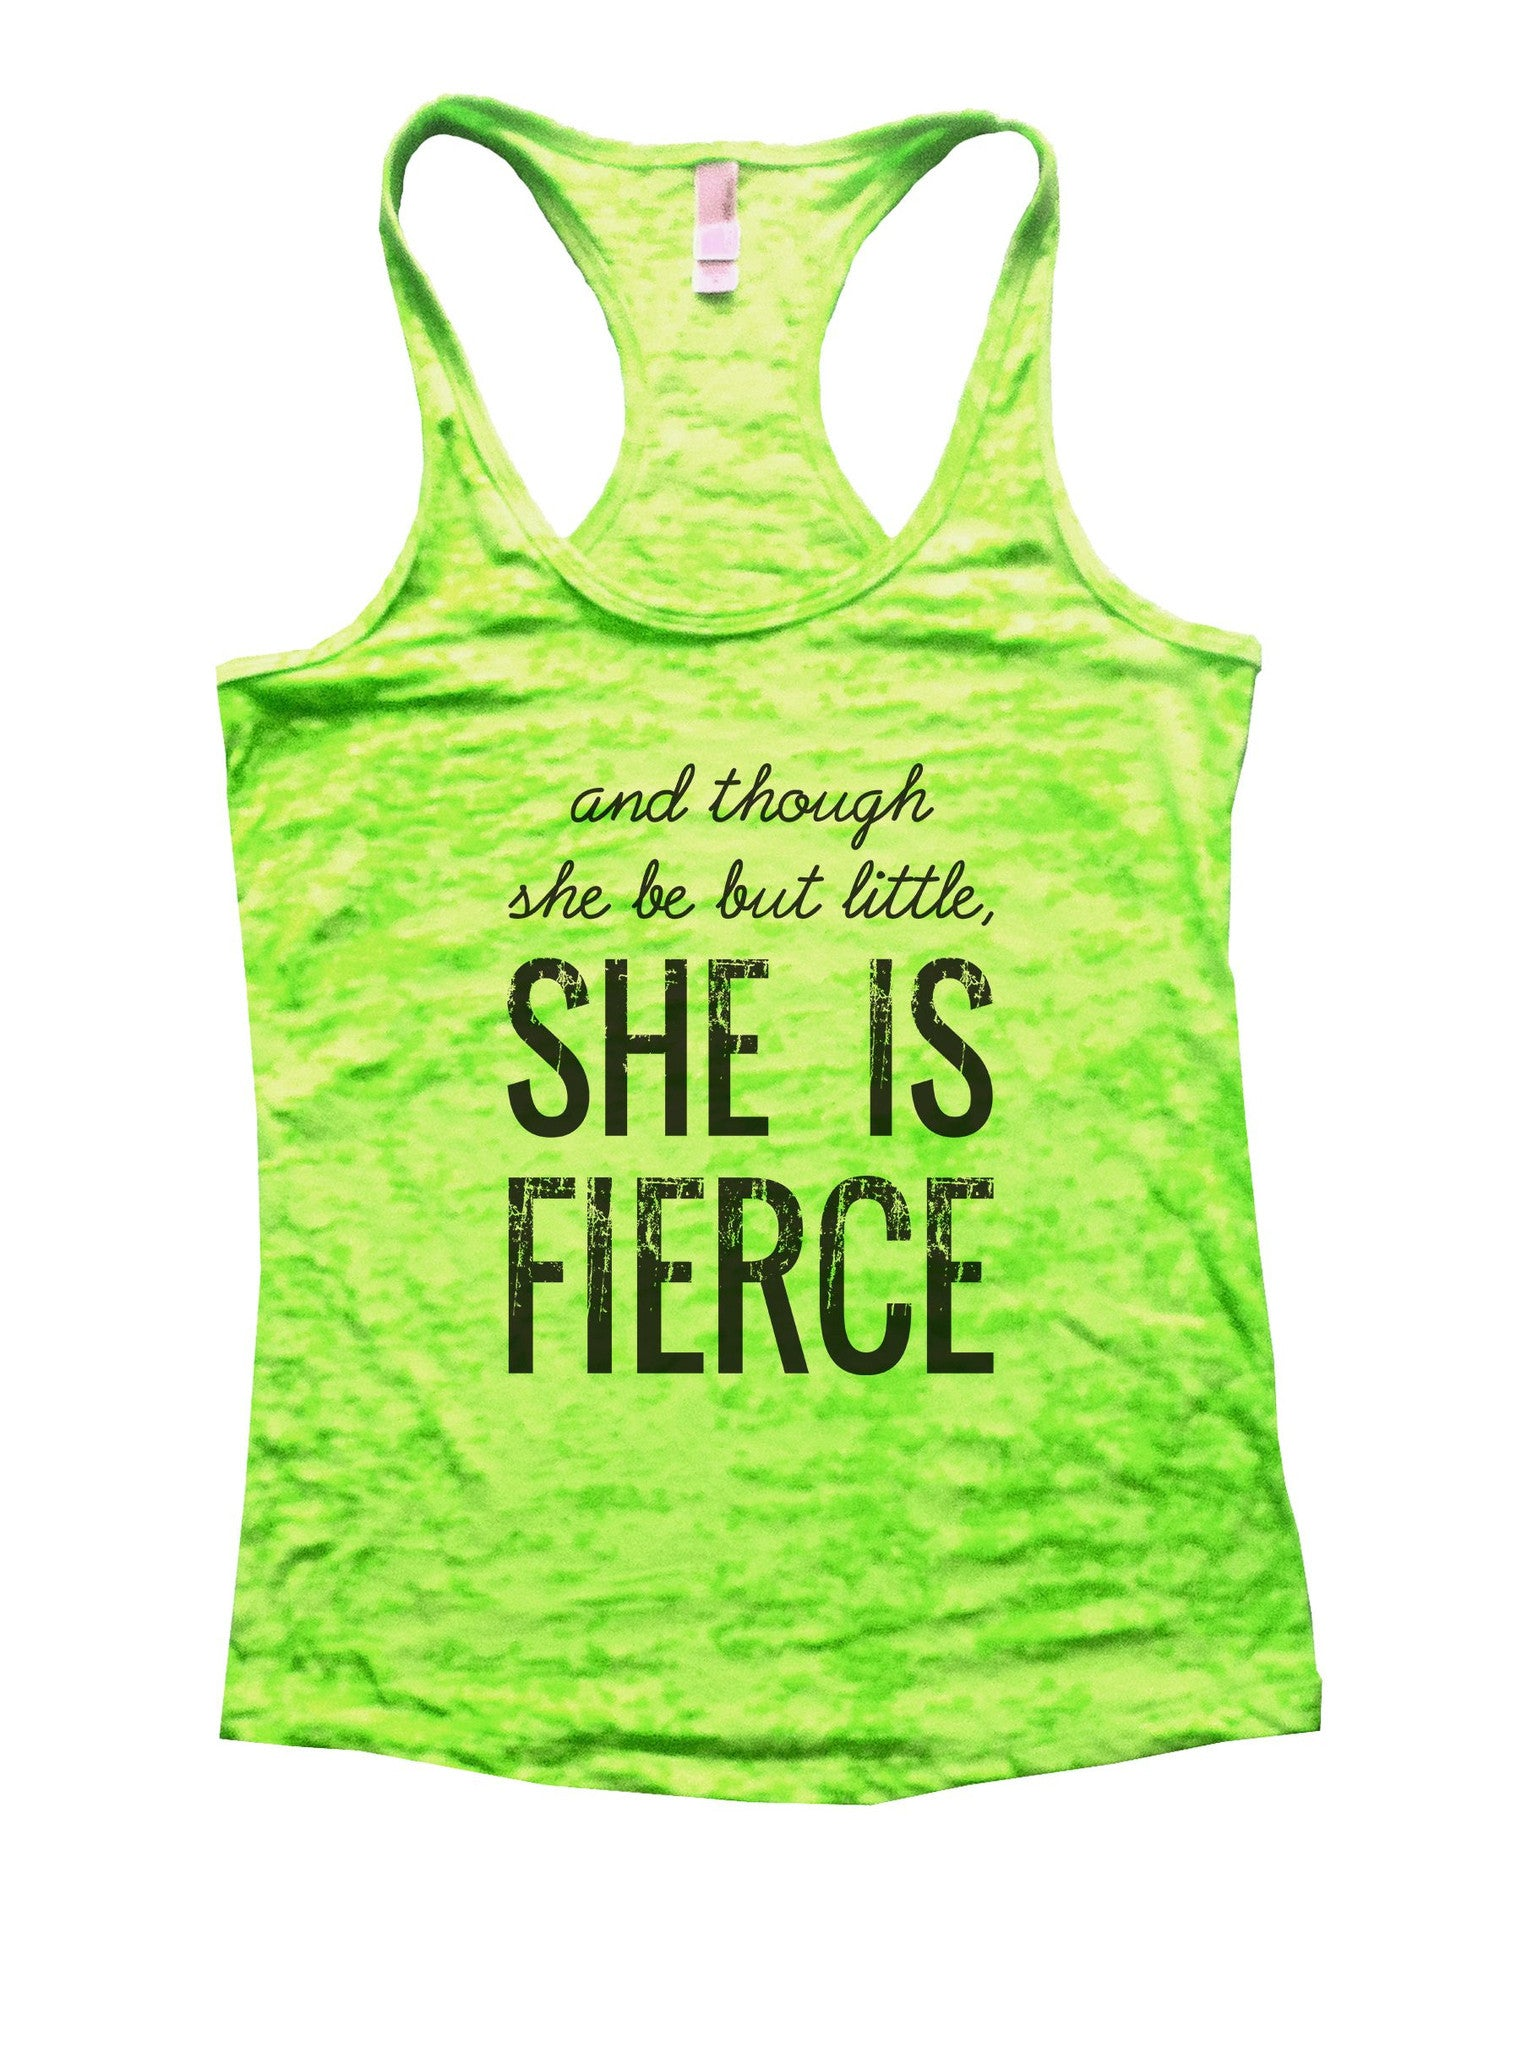 And Though She Be But Little, She Is Fierce Burnout Tank Top By BurnoutTankTops.com - 950 - Funny Shirts Tank Tops Burnouts and Triblends  - 1